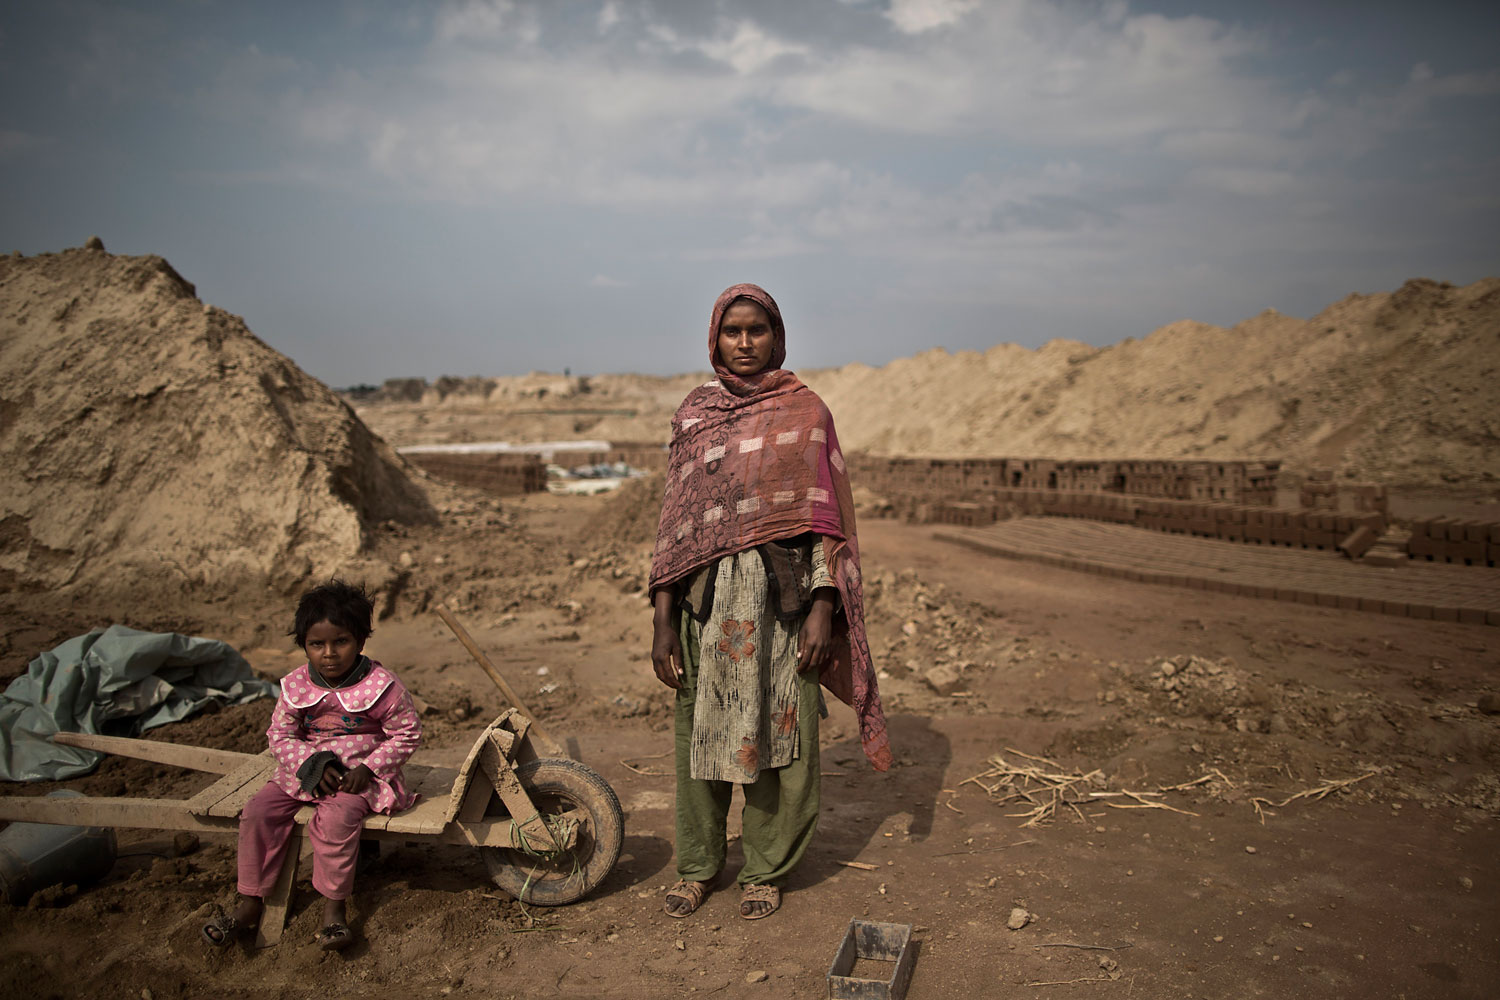 Sofia Zahour, 25, a Pakistani brick factory worker, poses for a picture as standing next to her daughter Alina, 2, at the site of her work in Mandra, near Rawalpindi, Pakistan, March 5, 2014. Sofia and her husband are in debt for their employer the amount of 400,000 rupees (approximately $4000).